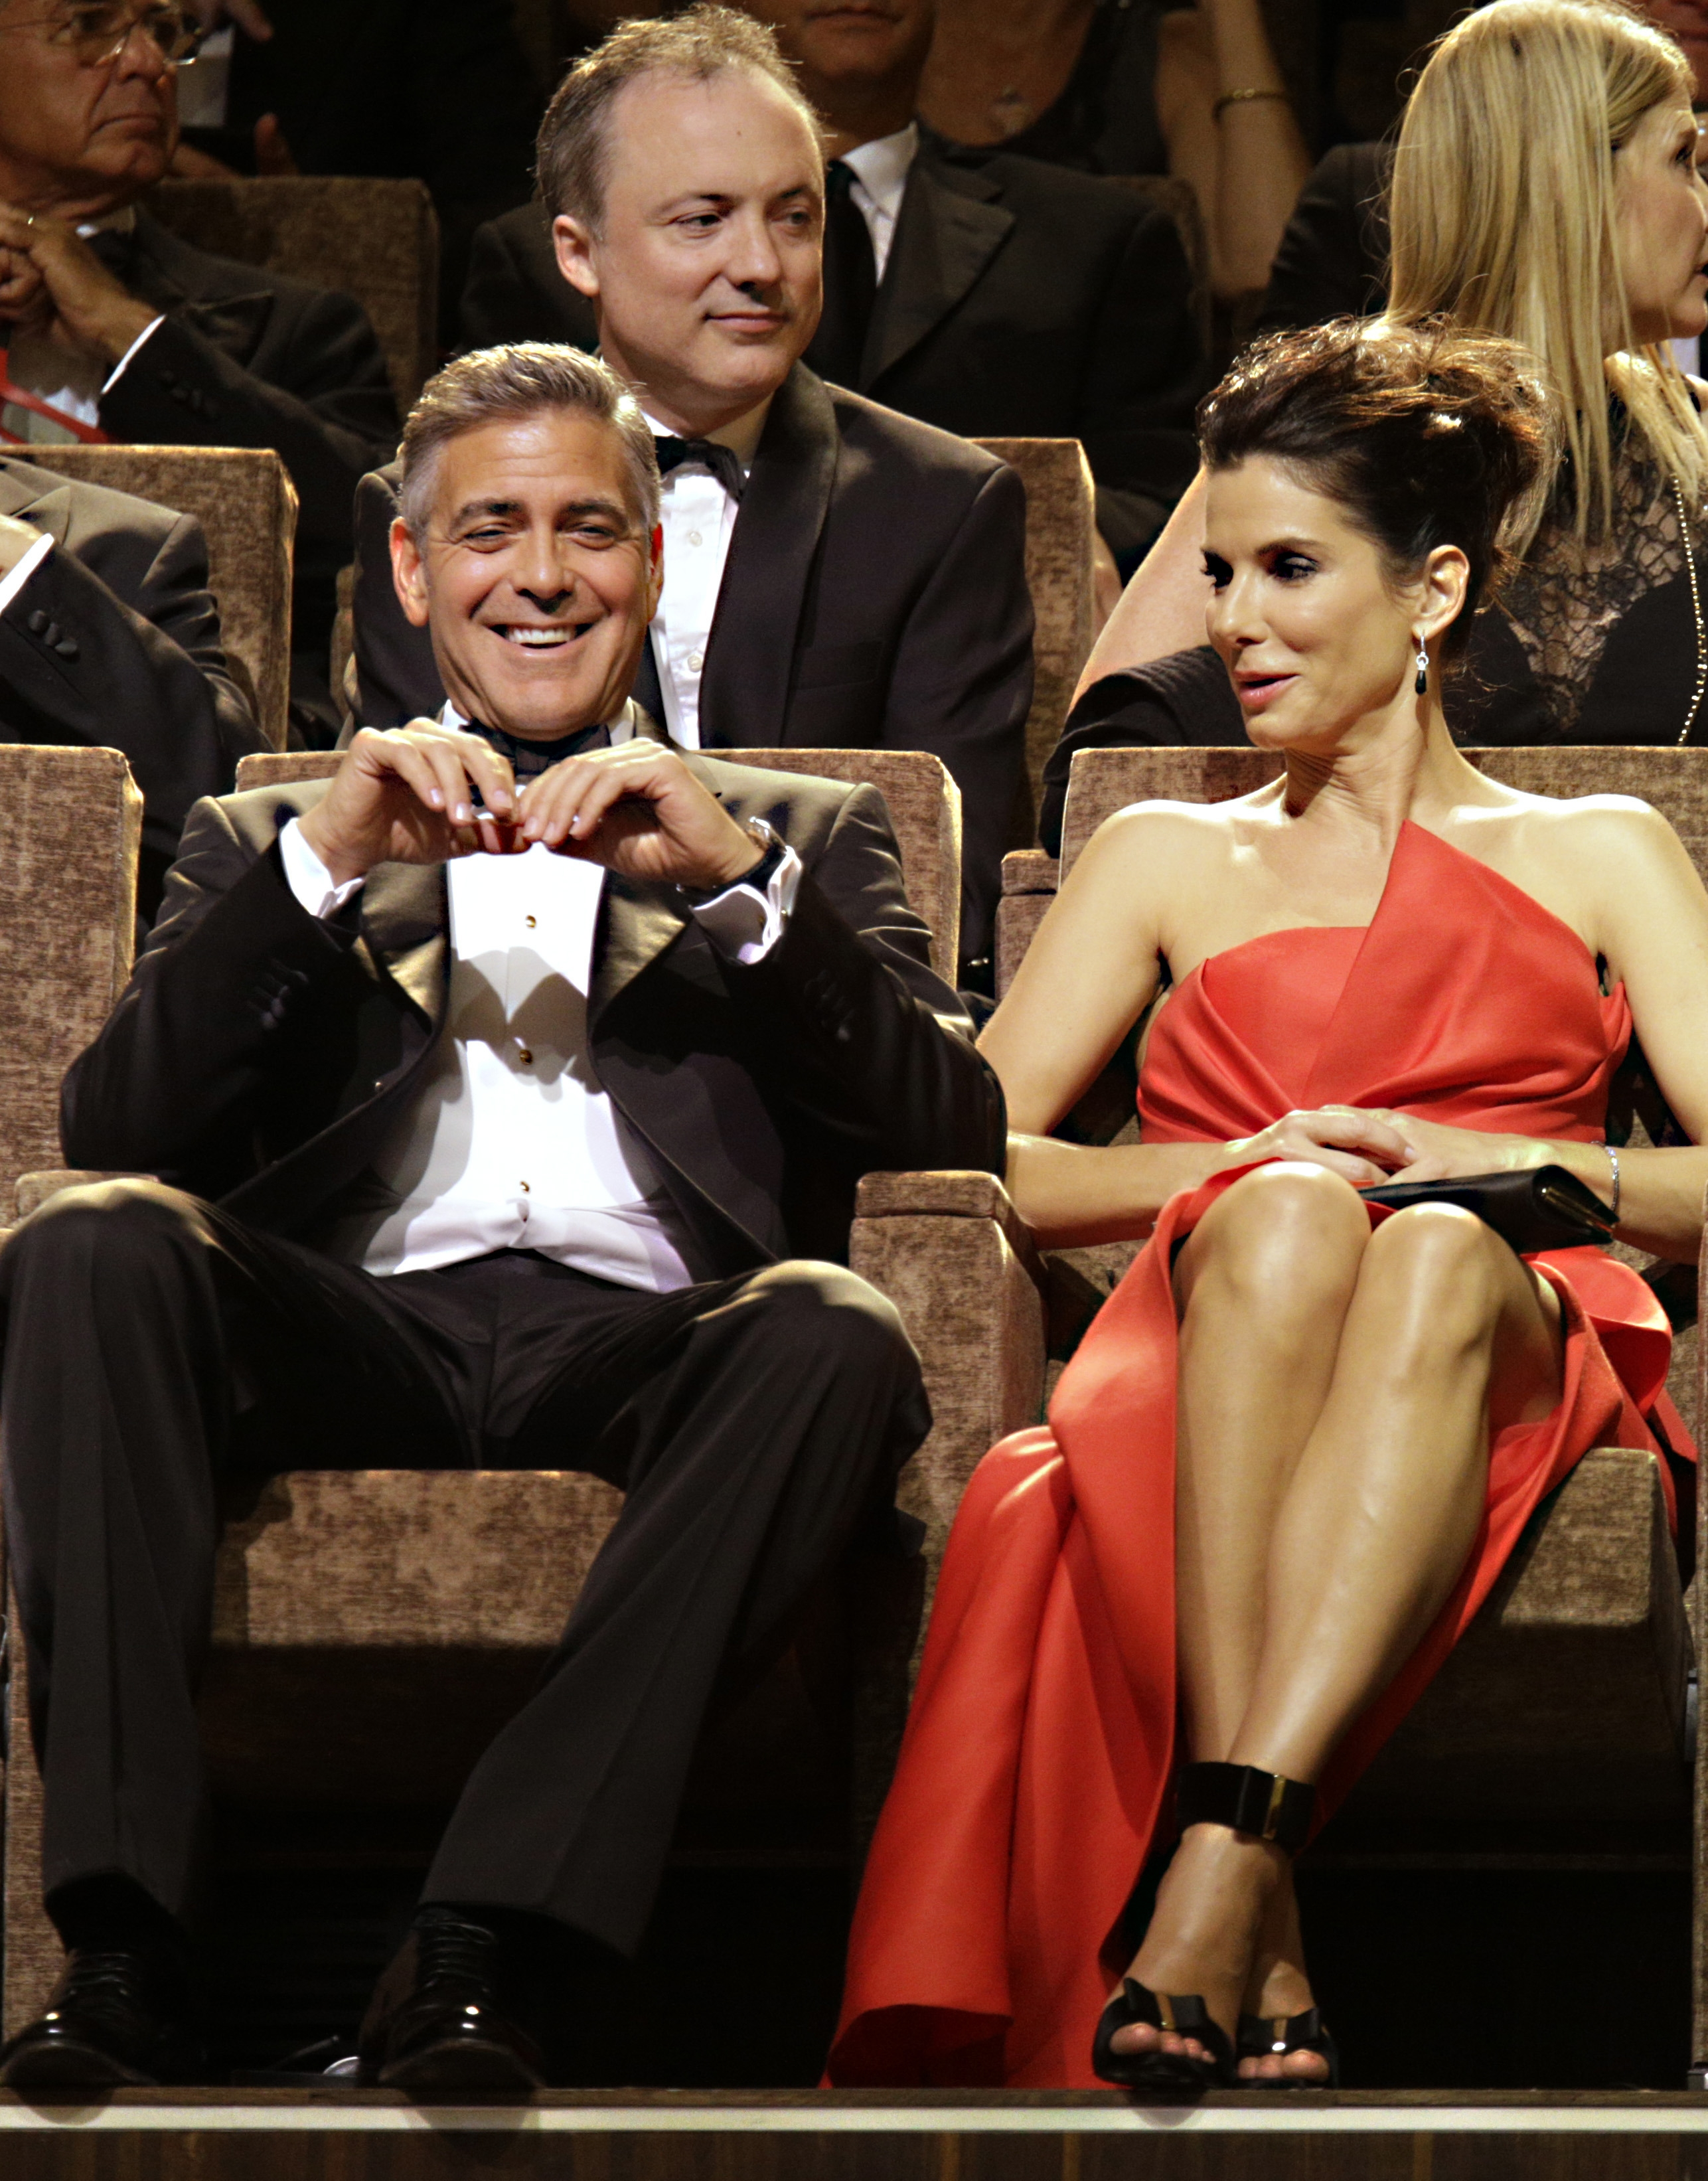 """Actors George Clooney and Sandra Bullock attend the screening of """" Gravity"""" at the Venice Film Festival."""